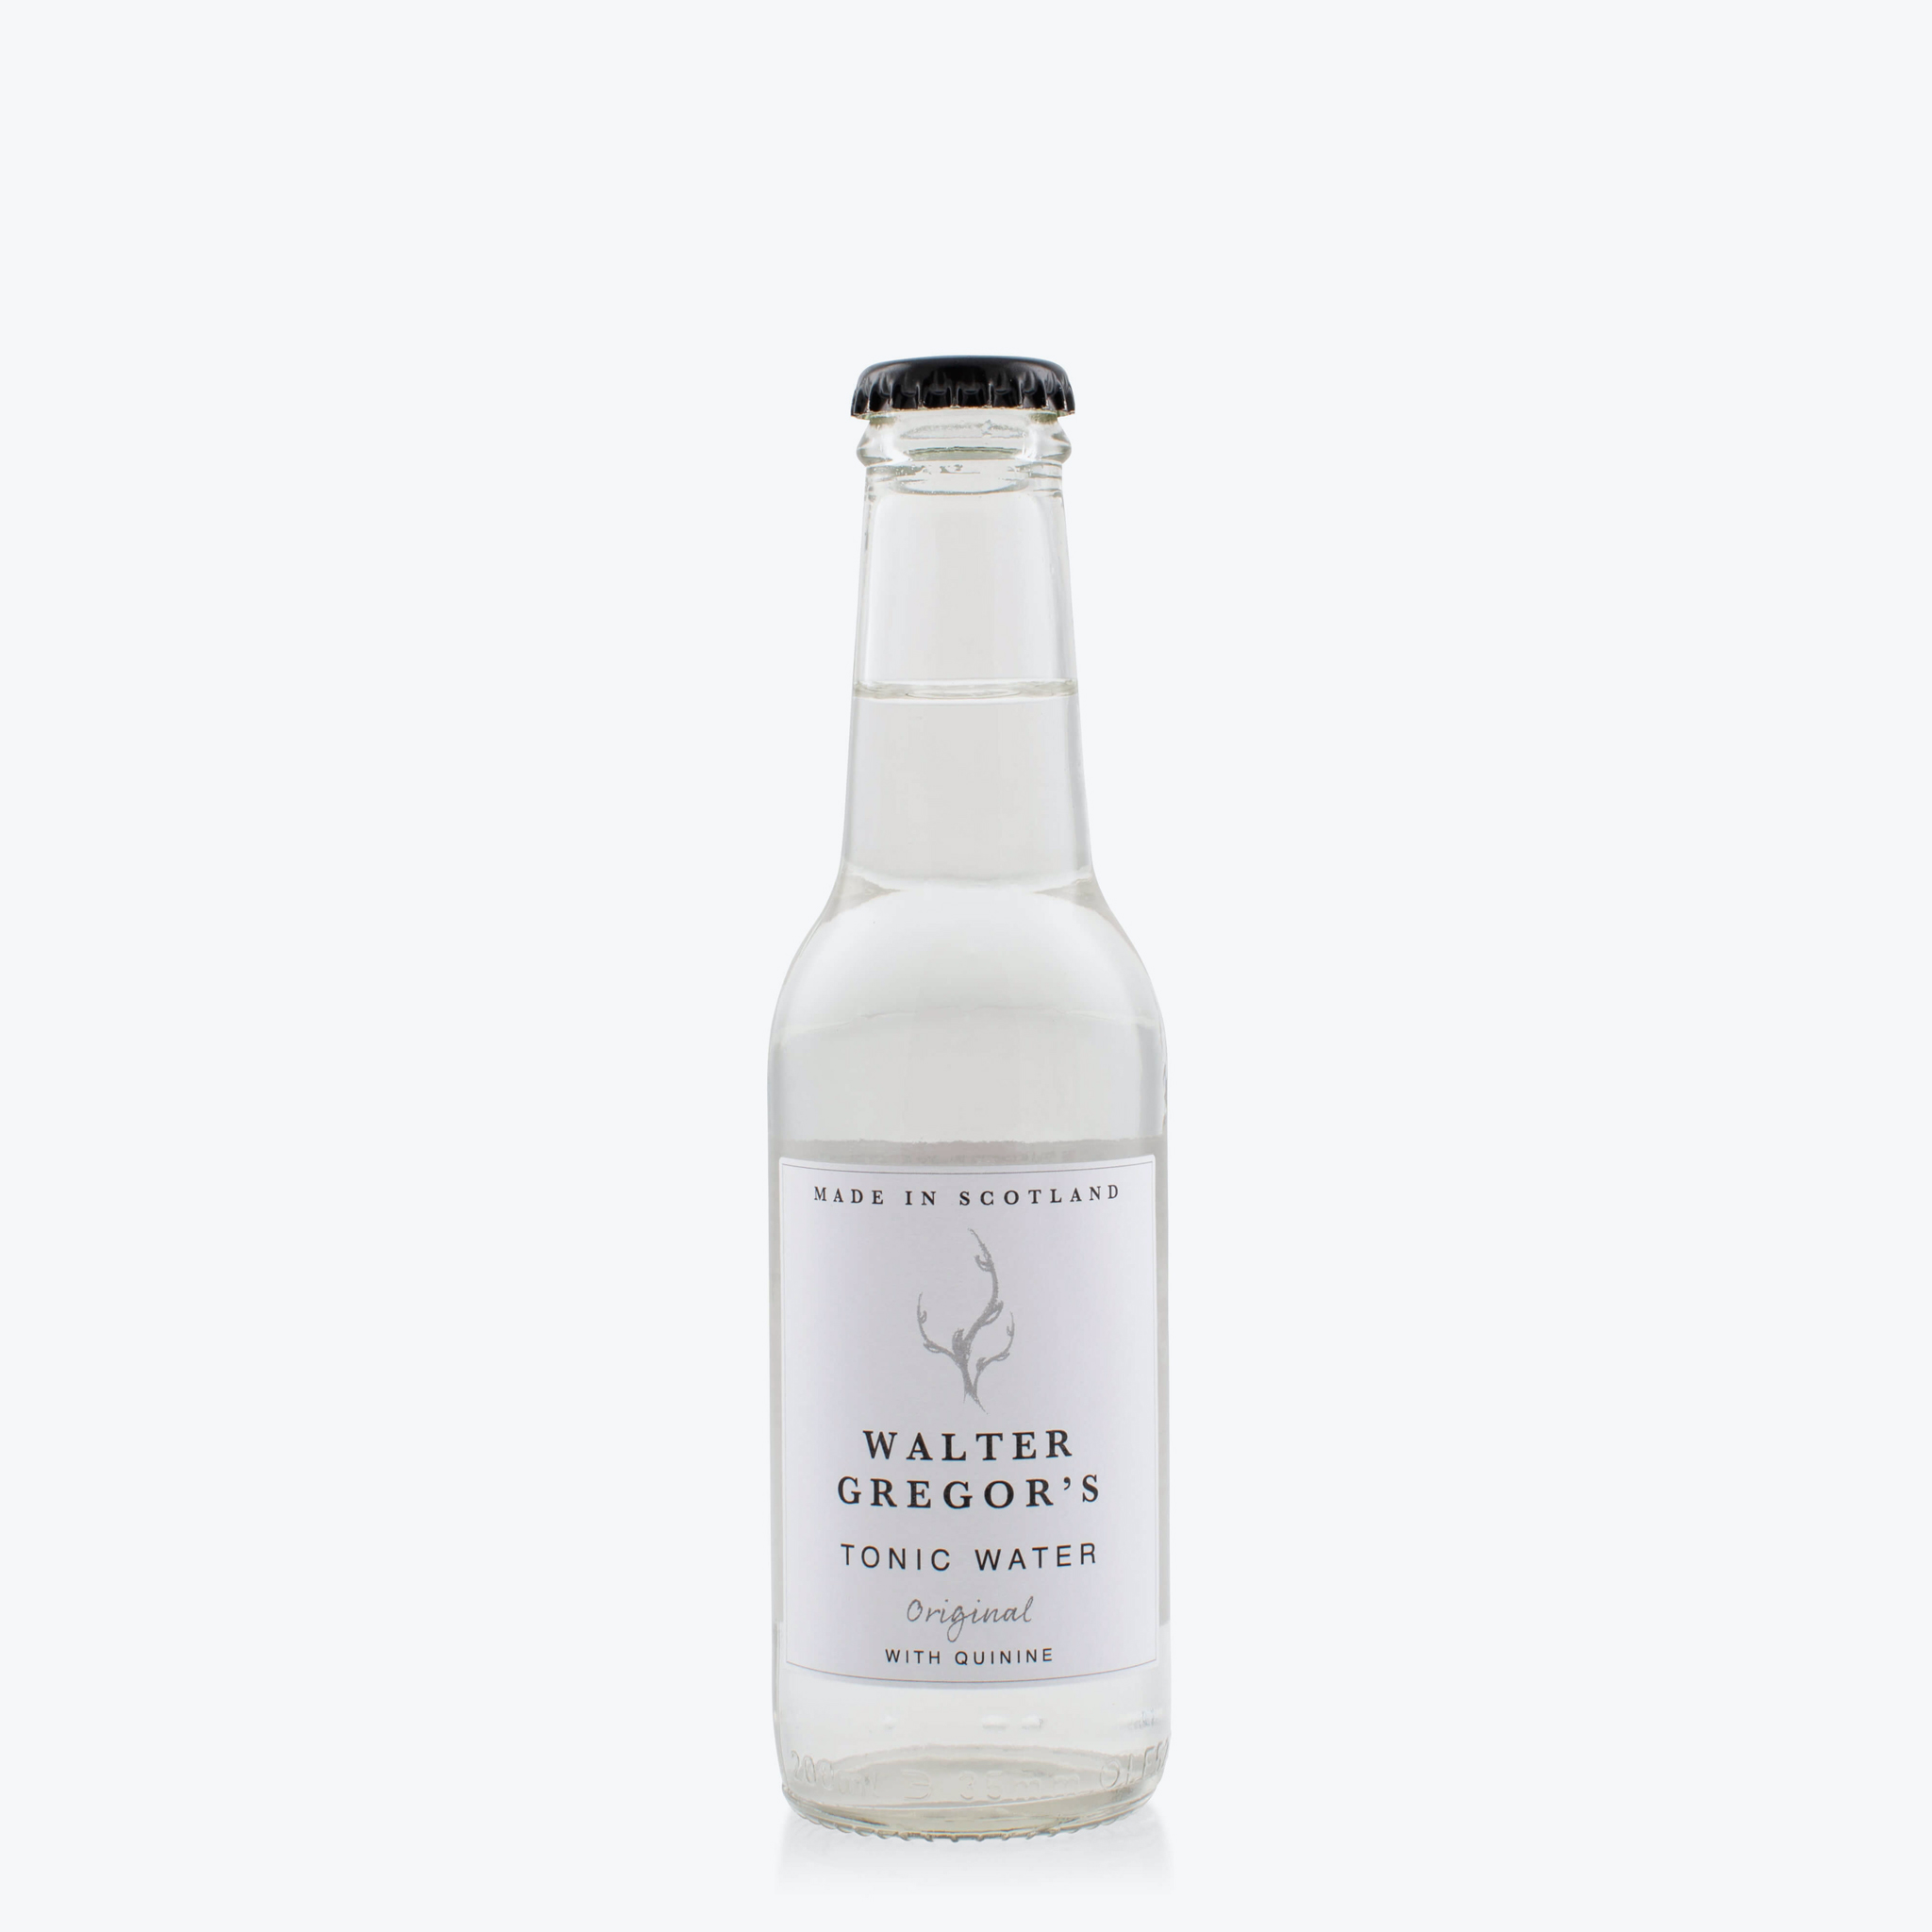 Walter Gregor's Scottish Tonic Water - Made at the Summer House Drinks farm in the historic parish of Pitsligo, Scotland, this tonic carries a distinctively light carbonation and half the sugar content of most tonic.